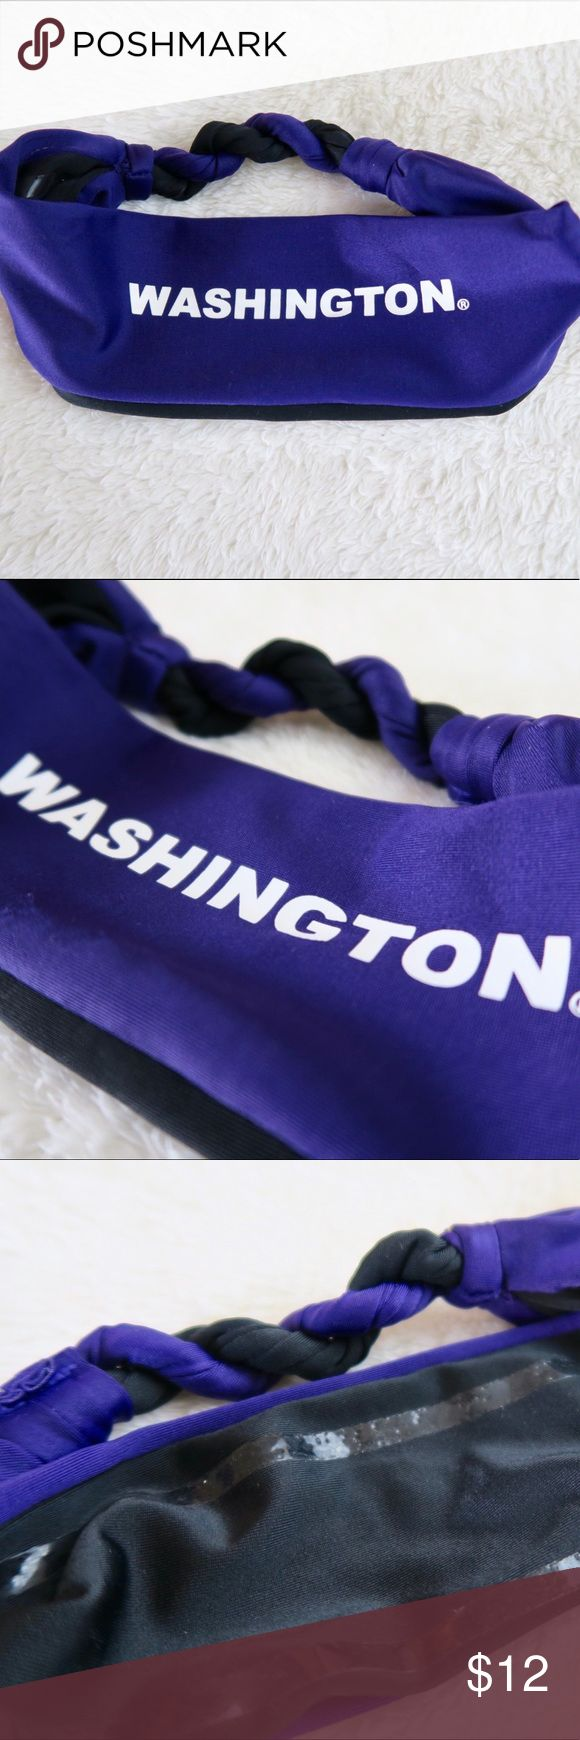 University of WASHINGTON Braided Non-Slip Headband Perfect for exercising, especially Running or other vigorous activity. This headband is one size fits most and has non-slip material on the inside so it can stay put. The back of the headband is braided, just another nice little touch that makes this headband stand out. The color is PURPLE and the lettering is all caps, white, and says WASHINGTON. Purchased from the UW bookstore. No trades. Feel free to make an offer or bundle for additional…